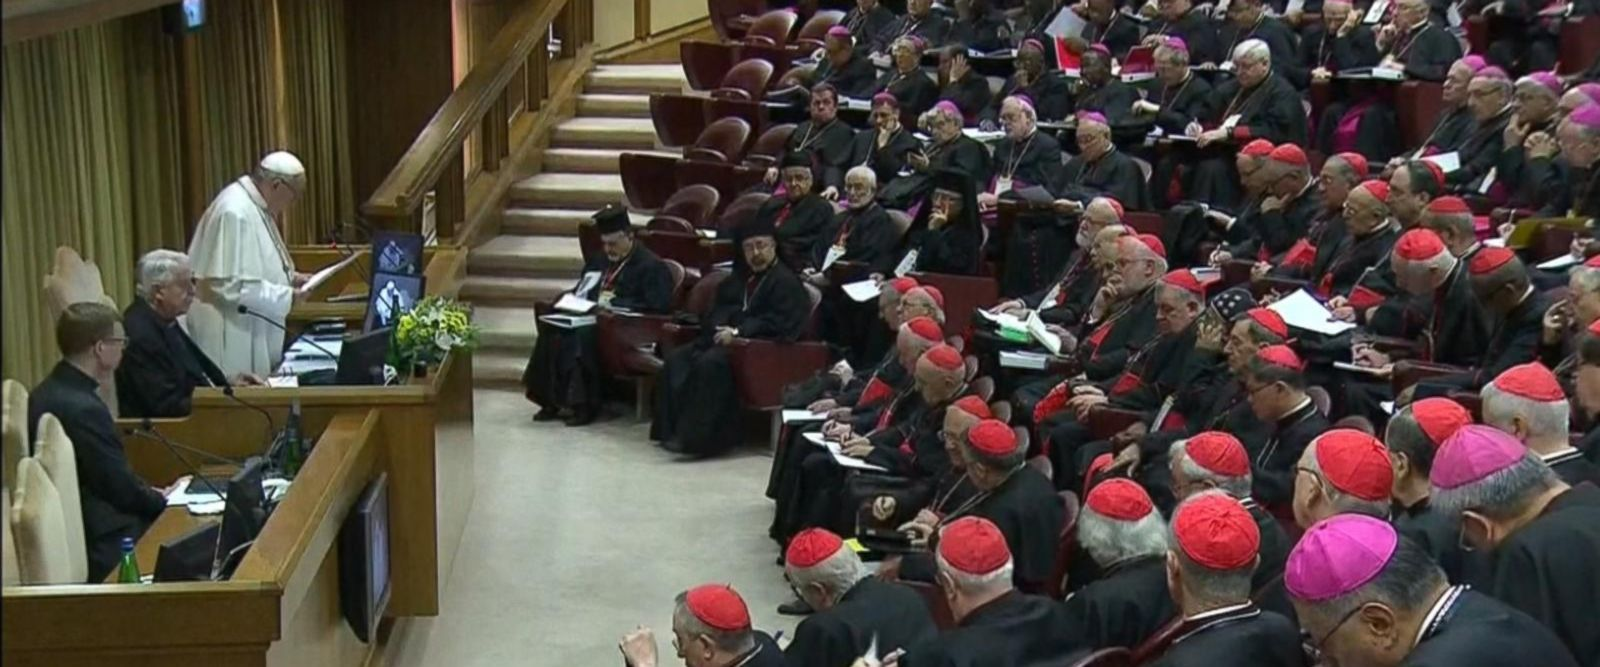 VIDEO: Historic summit held at the Vatican by the pope